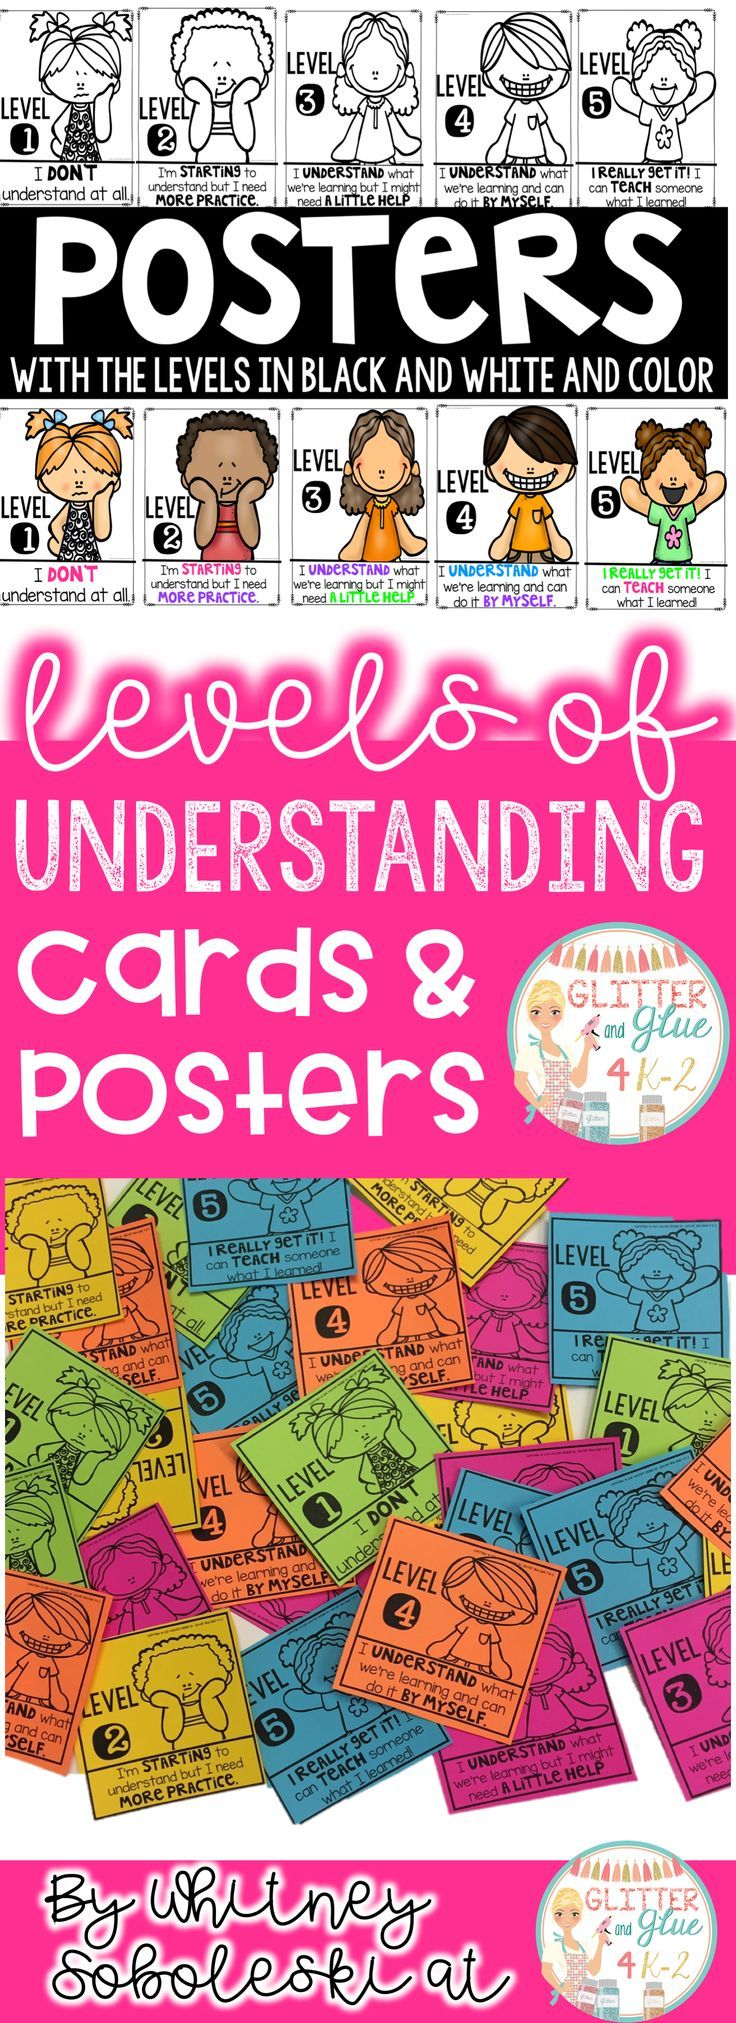 Levels of understanding includes cards and posters